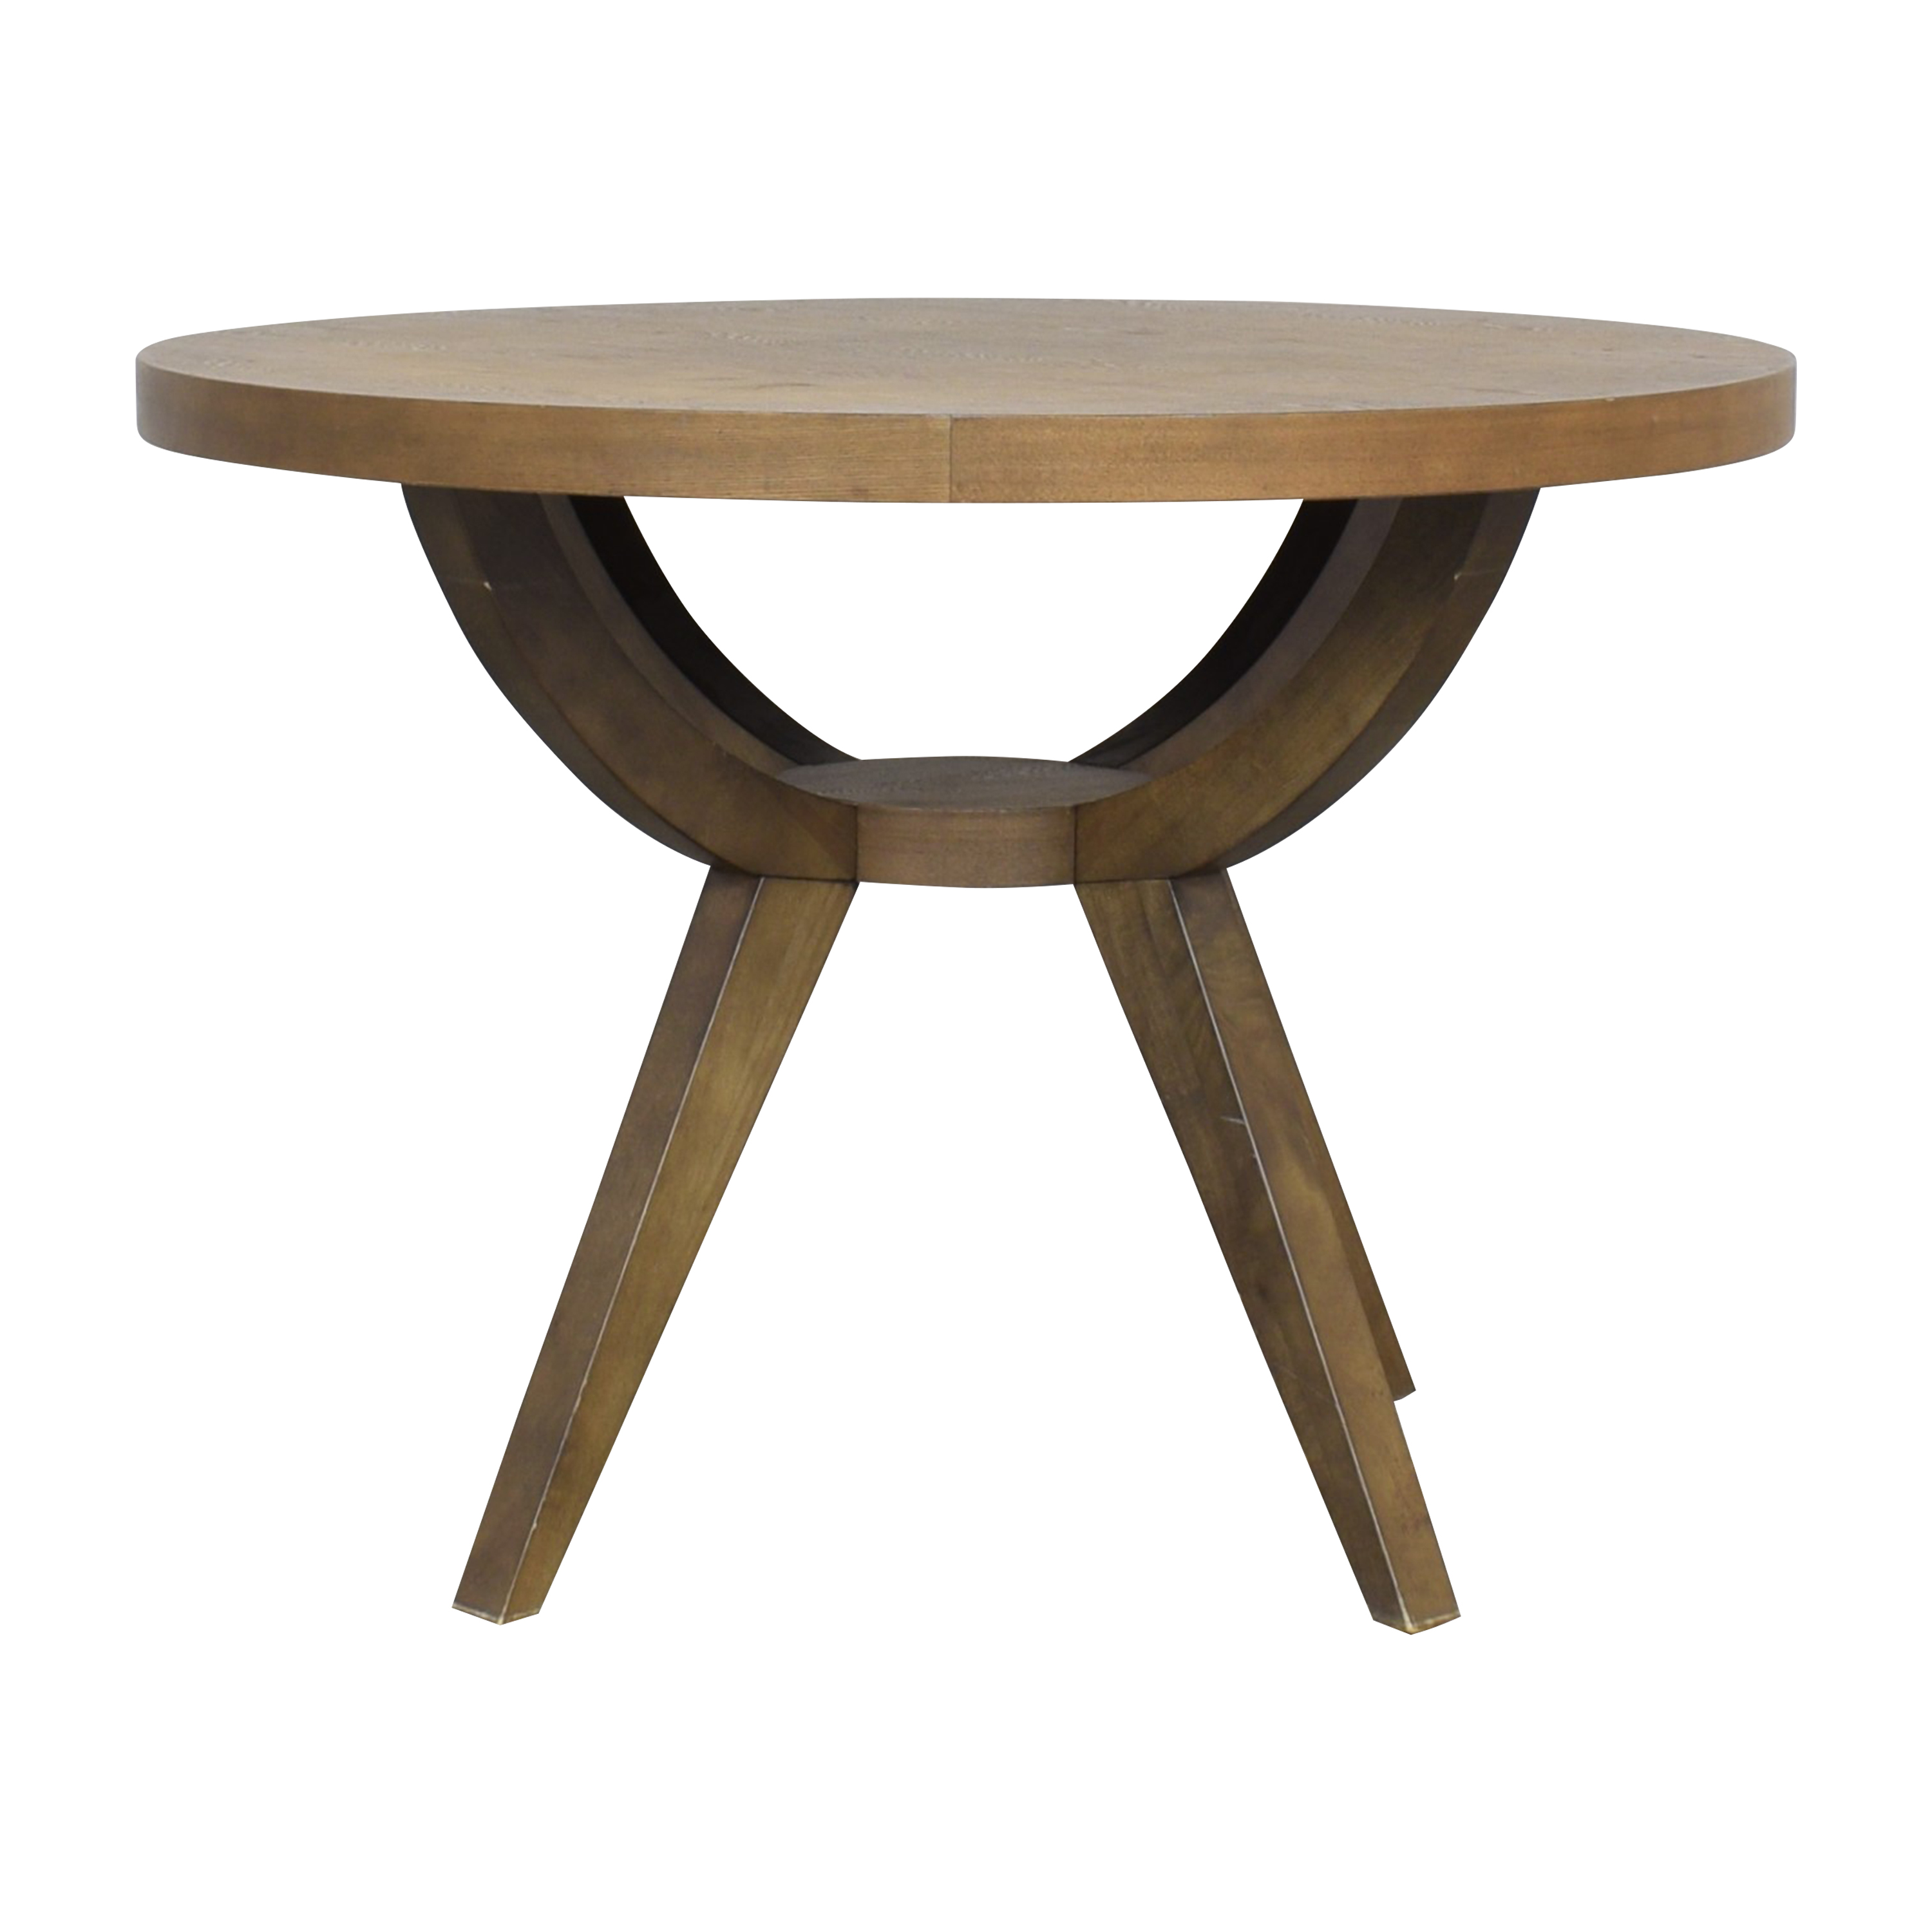 West Elm West Elm Arc Base Pedestal Dining Table used